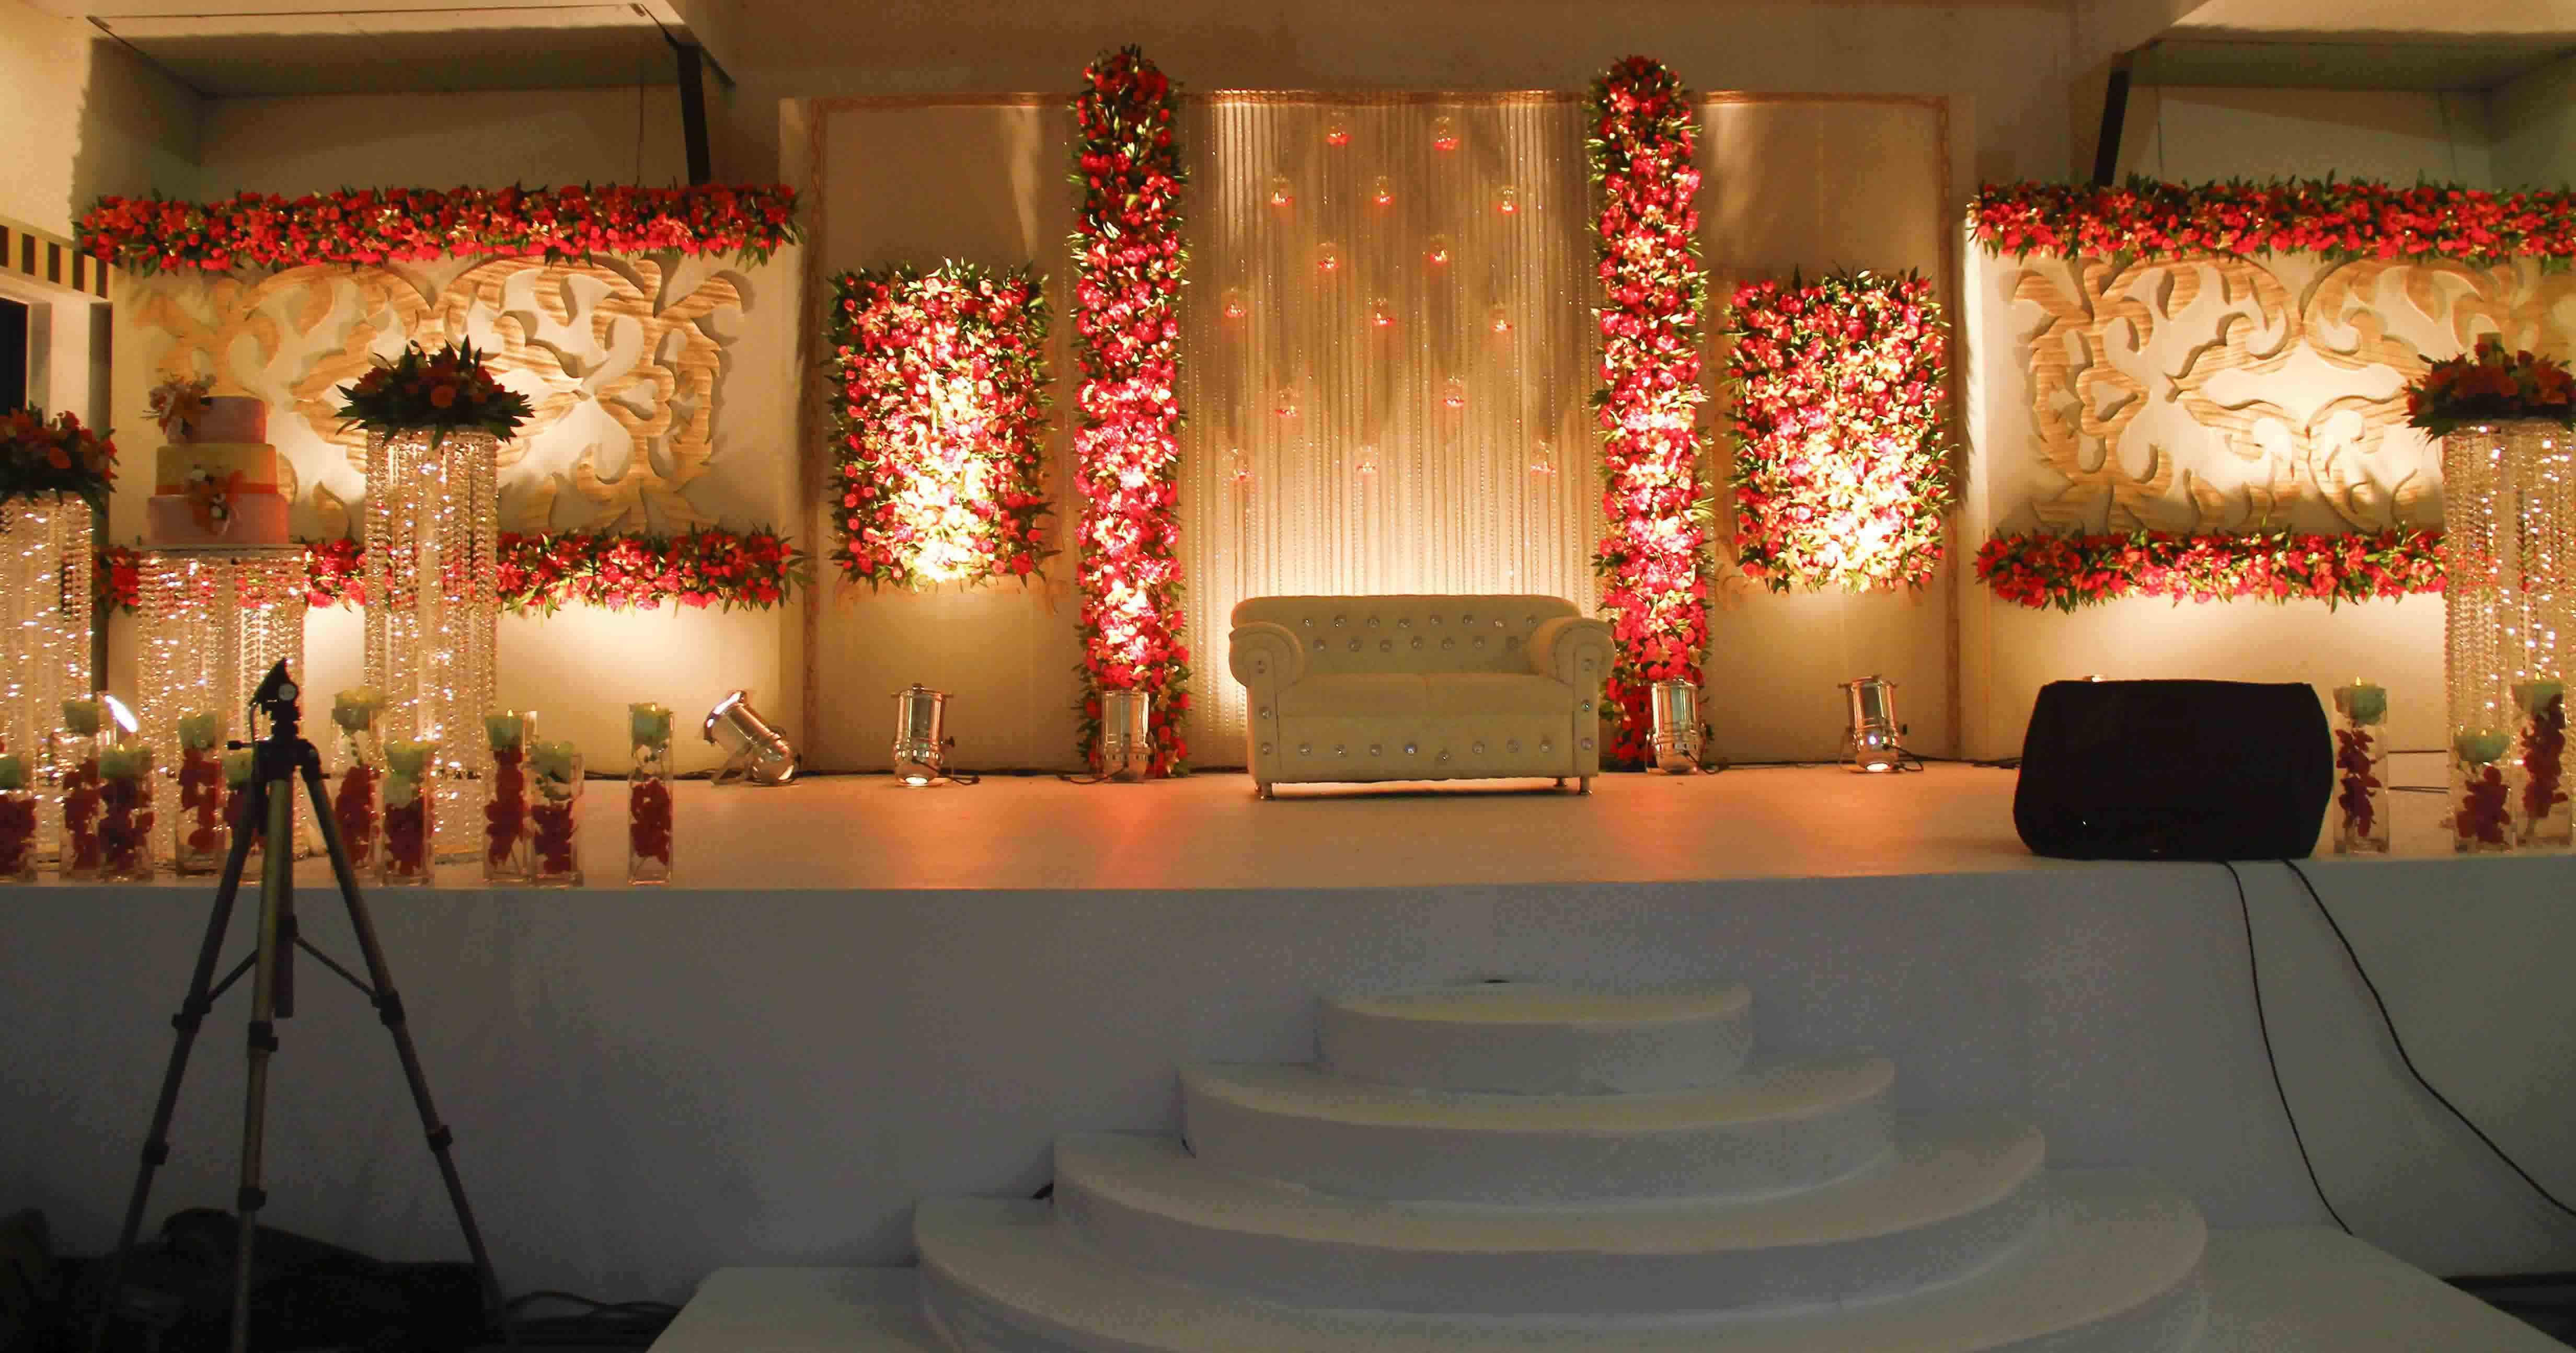 Best of stage decorations for wedding in kerala wedding kerala wedding bedroom decoration ideas junglespirit Image collections